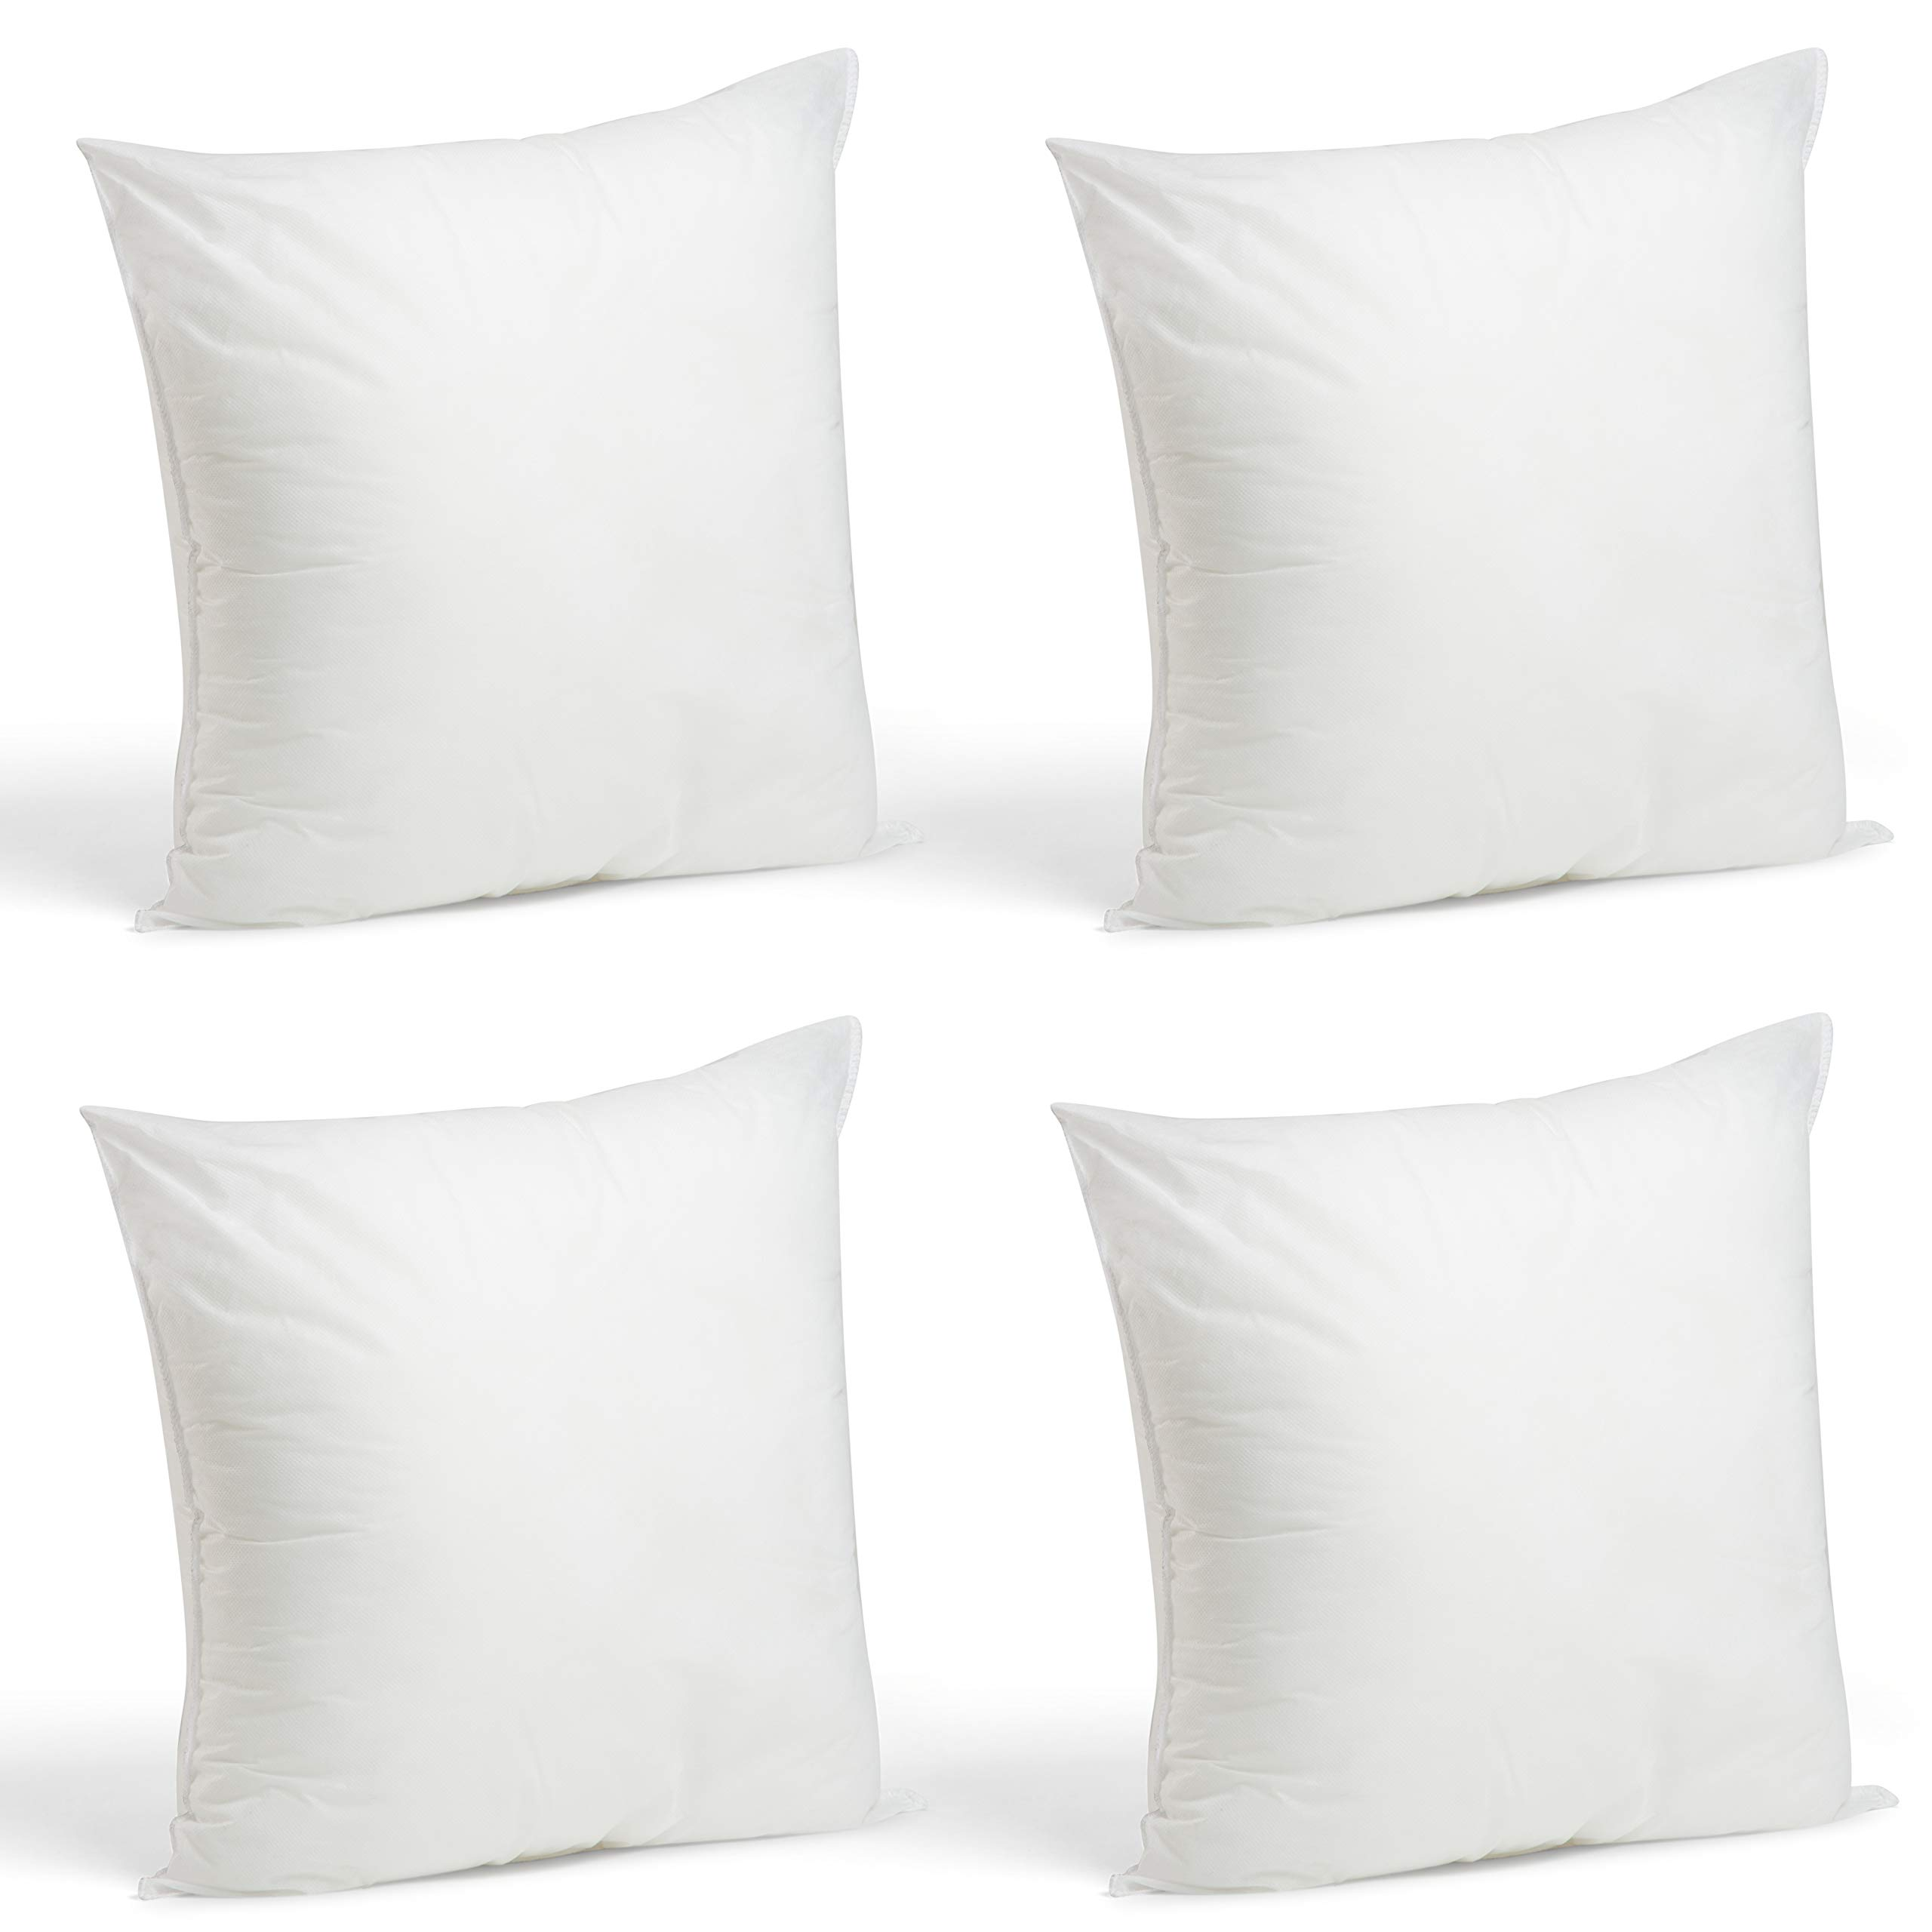 Foamily Set of 4-18 x 18 Premium Hypoallergenic Stuffer Pillow Inserts Sham Square Form Polyester, 18'' L X 18'' W, Standard/White by Foamily